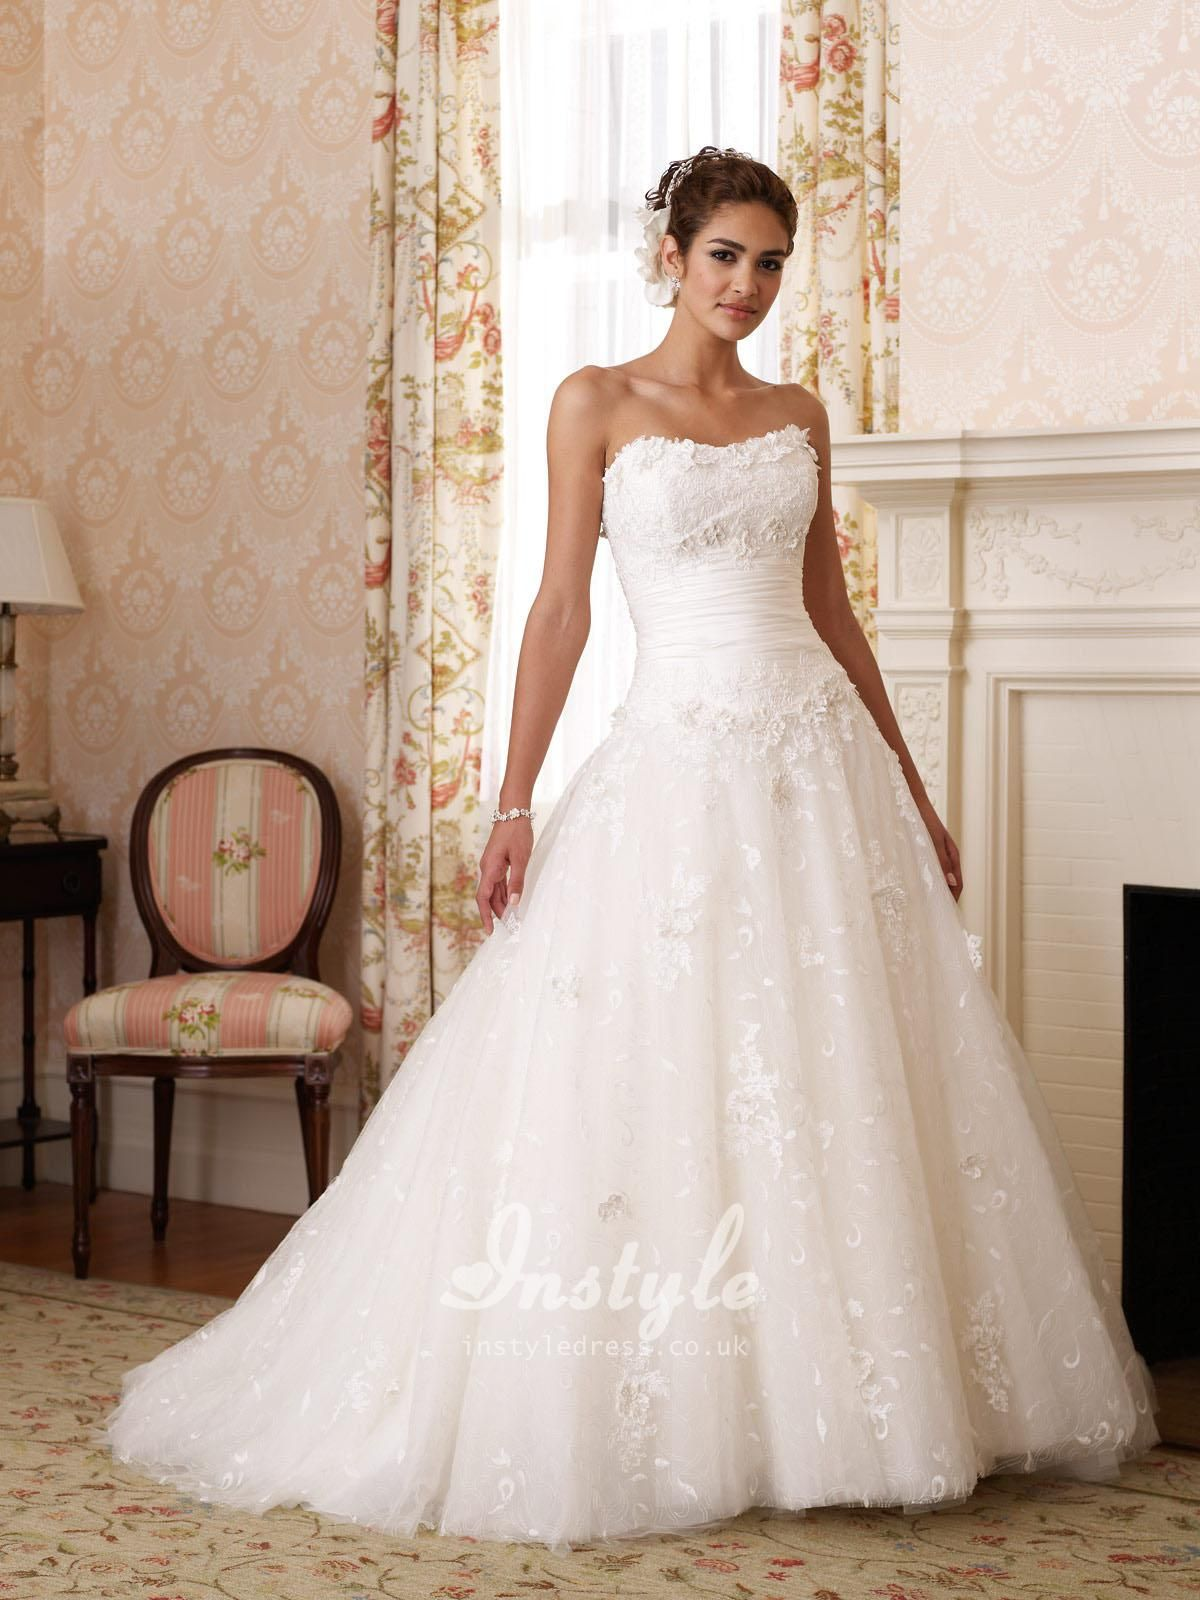 princess strapless wedding dresses with diamonds KqtQ